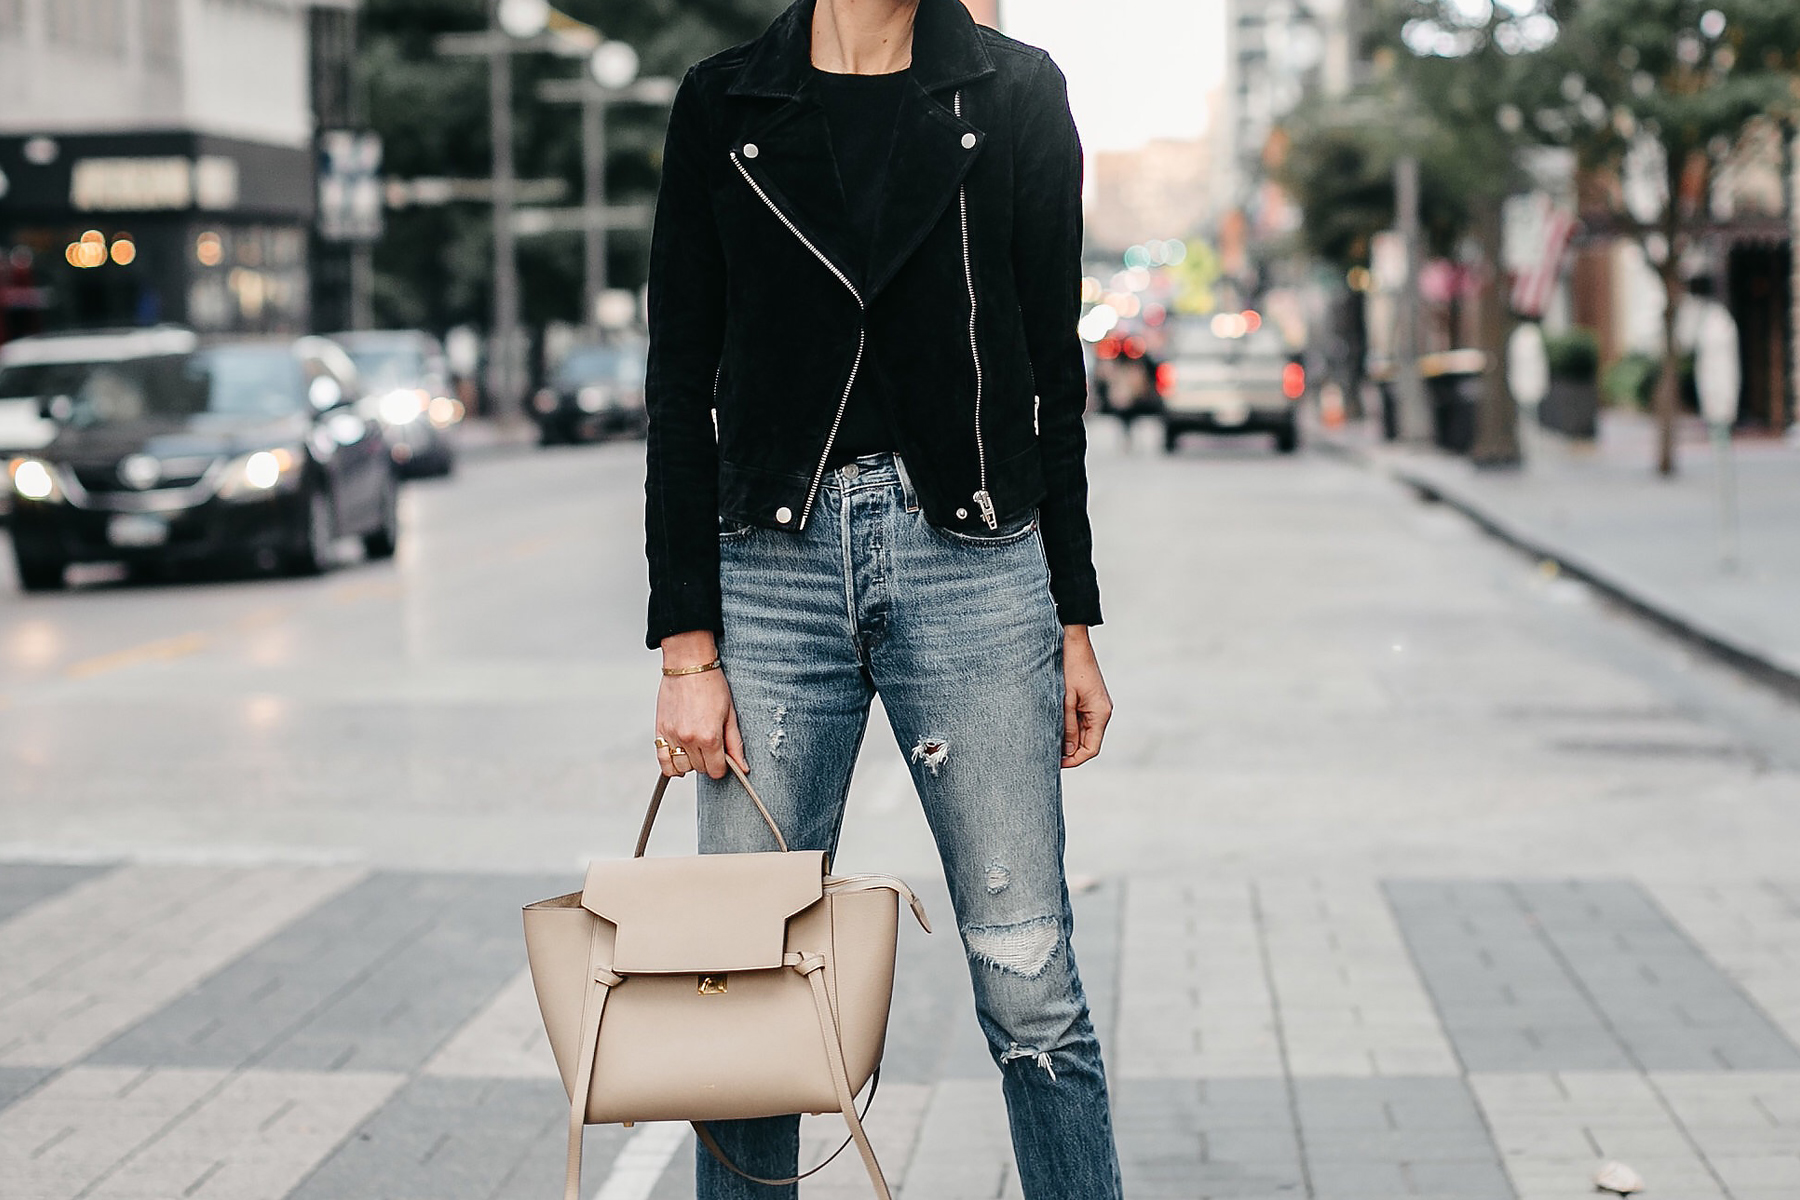 Black Suede Moto Jacket Black Sweater Denim Ripped Jeans Celine Mini Belt Bag Fall-Fashion Must Haves Fashion Jackson Dallas Blogger Fashion Blogger Street Style